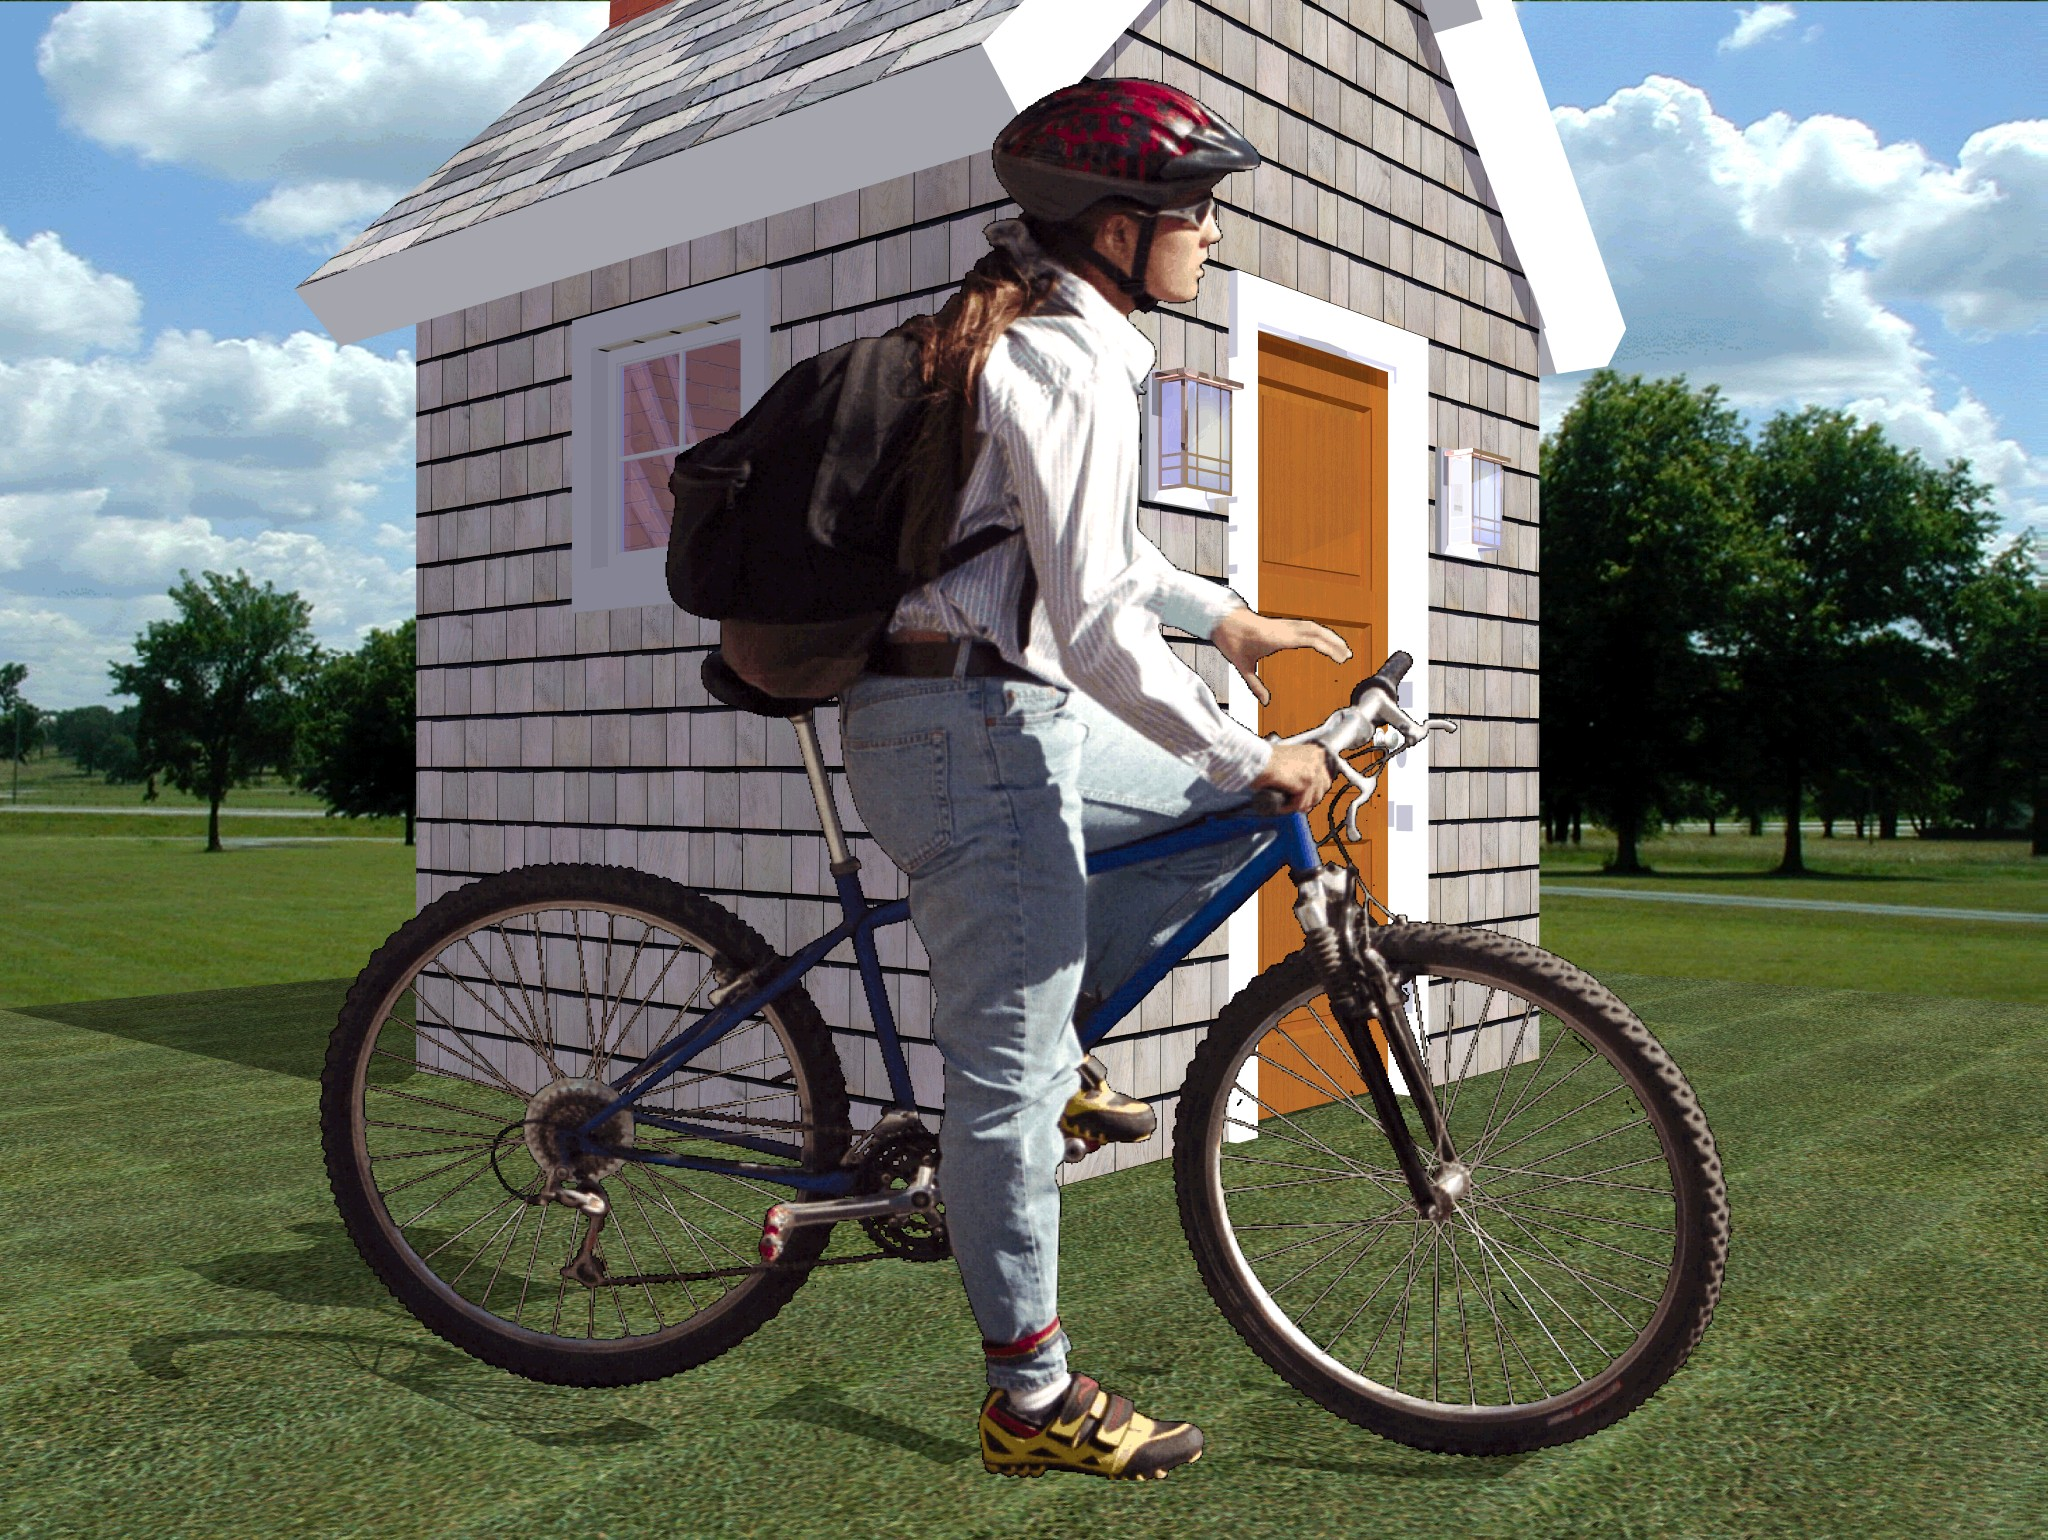 Image of person on bicycle with background rendered transparently